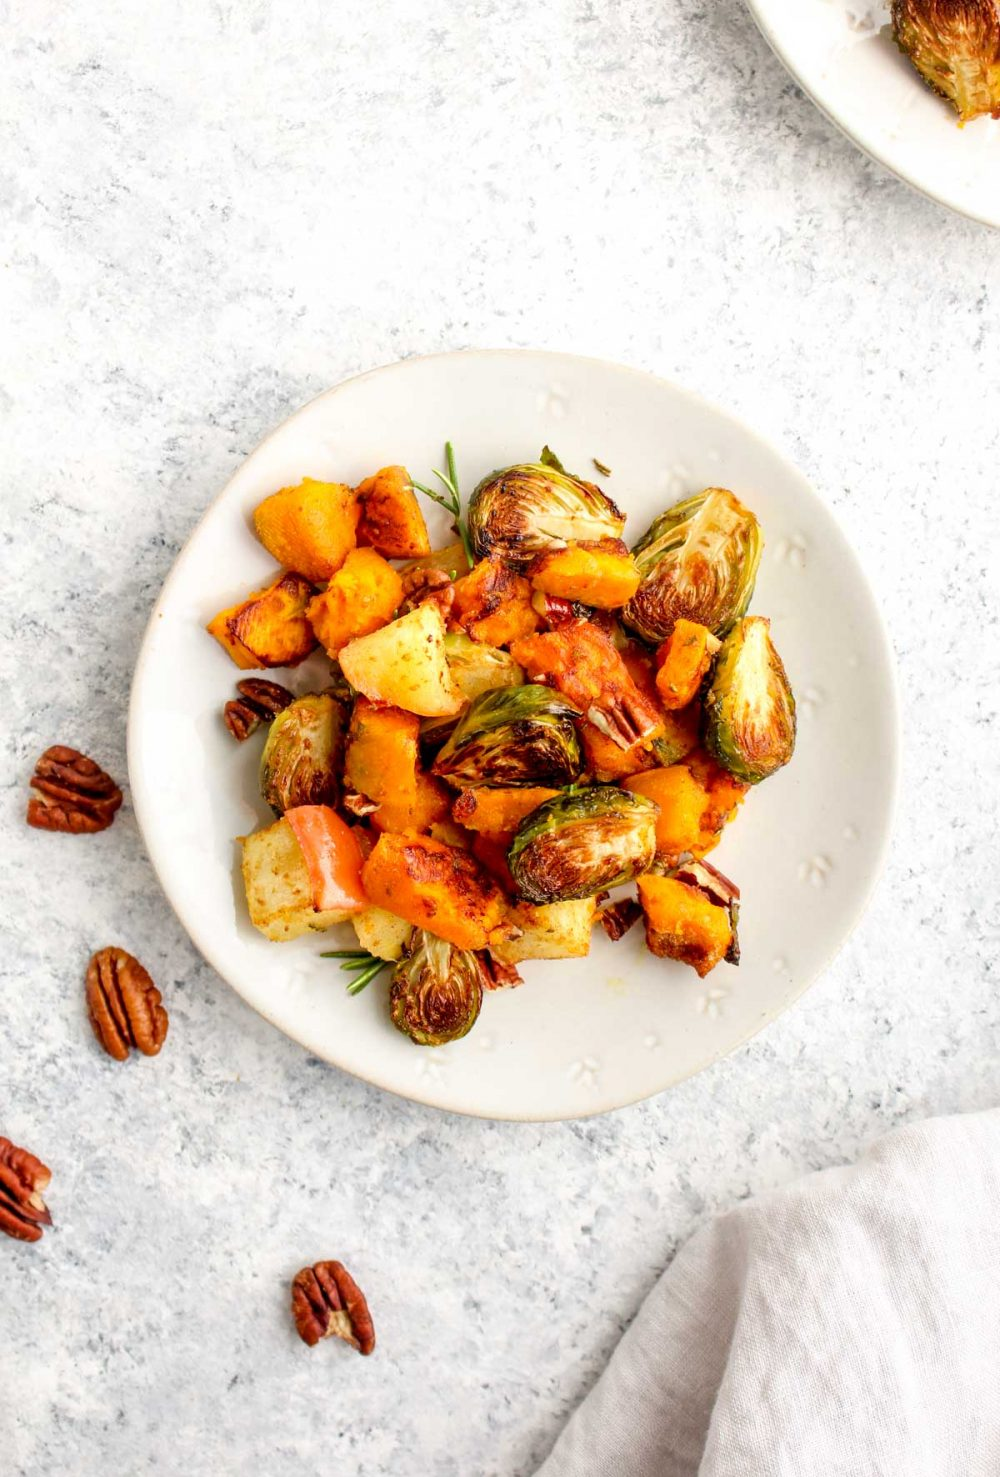 Butternut Squash, Apple, and Brussel Sprout Bake on a plate with rosemary and pecans.